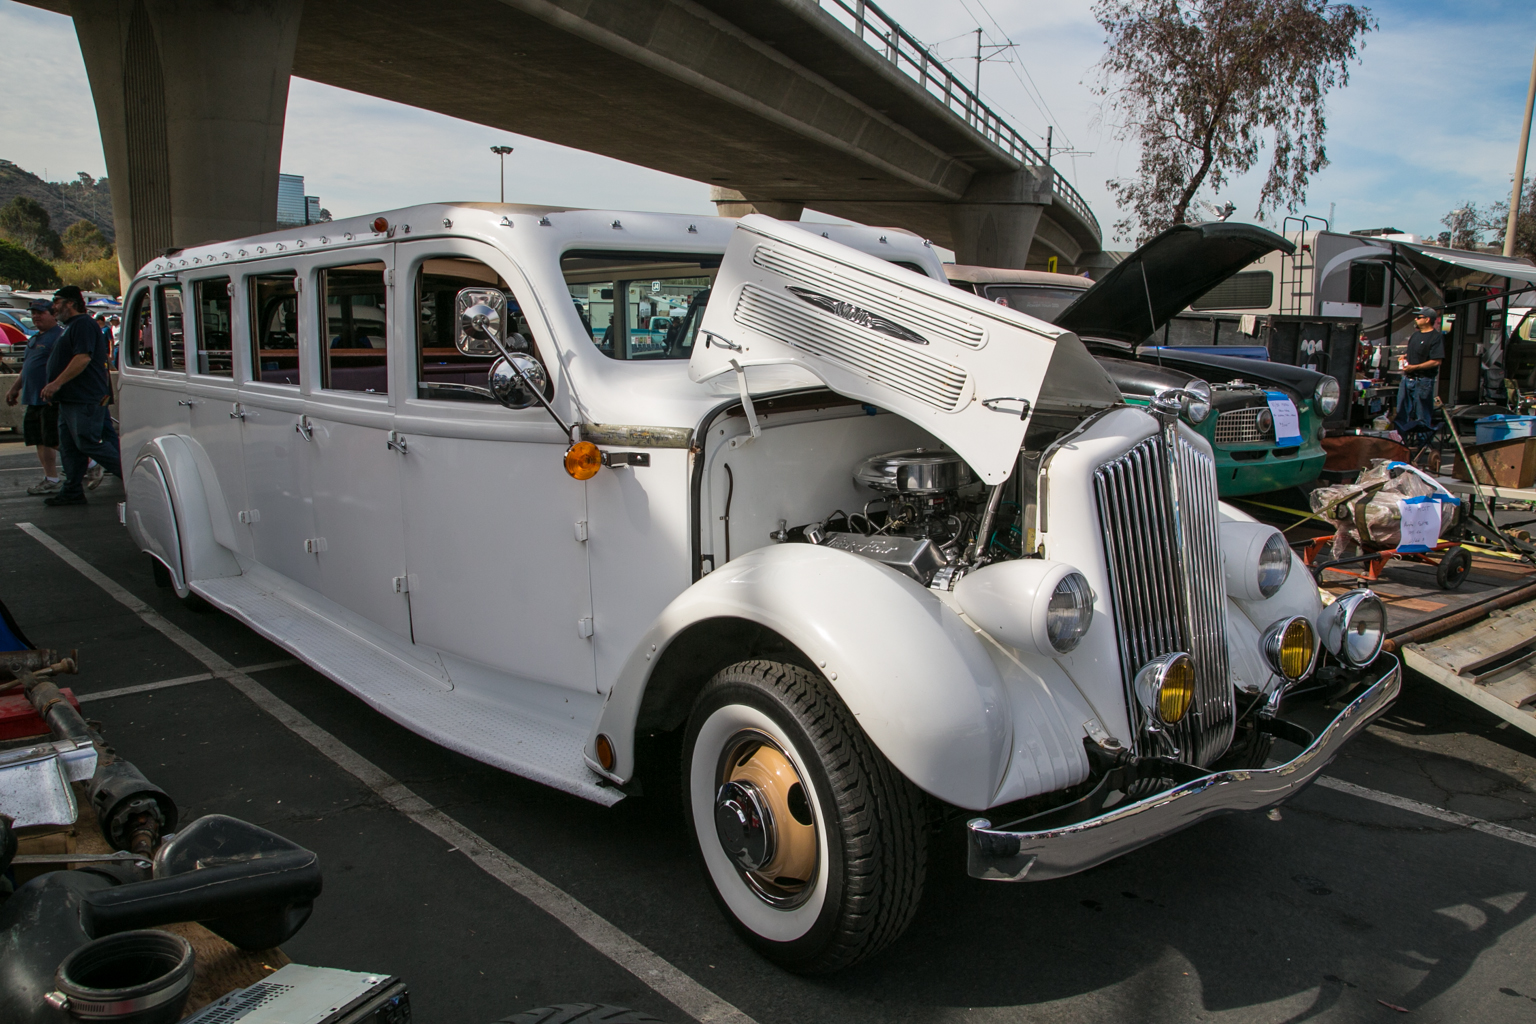 Gallery: Freaks, Trucks, and Hot Rods At The 2013 Big Three Swap Meet – San Diego, California